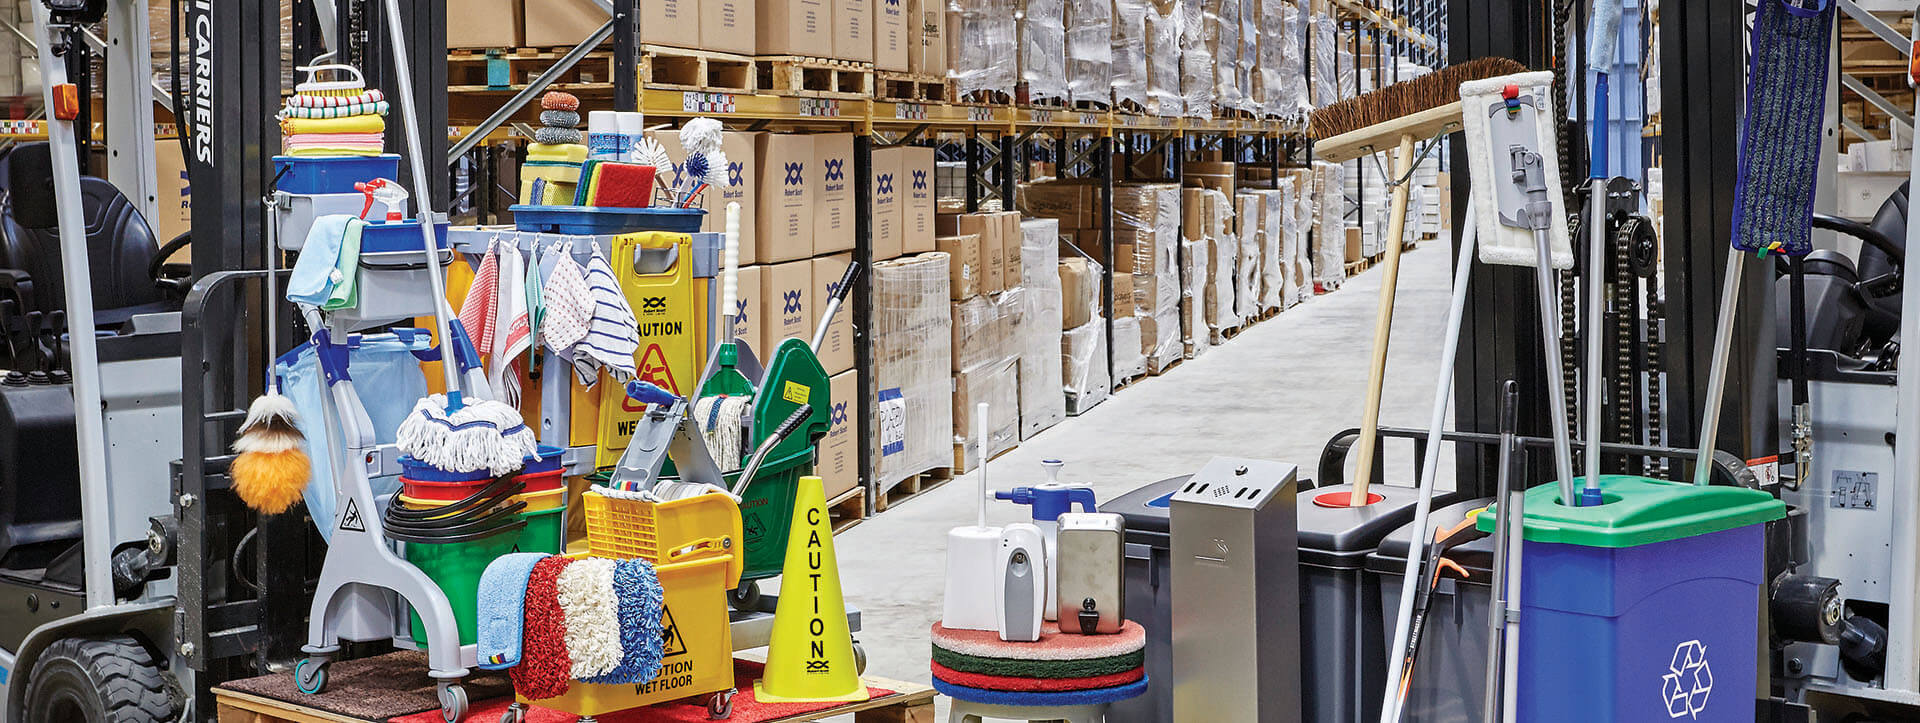 JANITORIAL SERVICES SUITED FOR YOUR BUSINESS